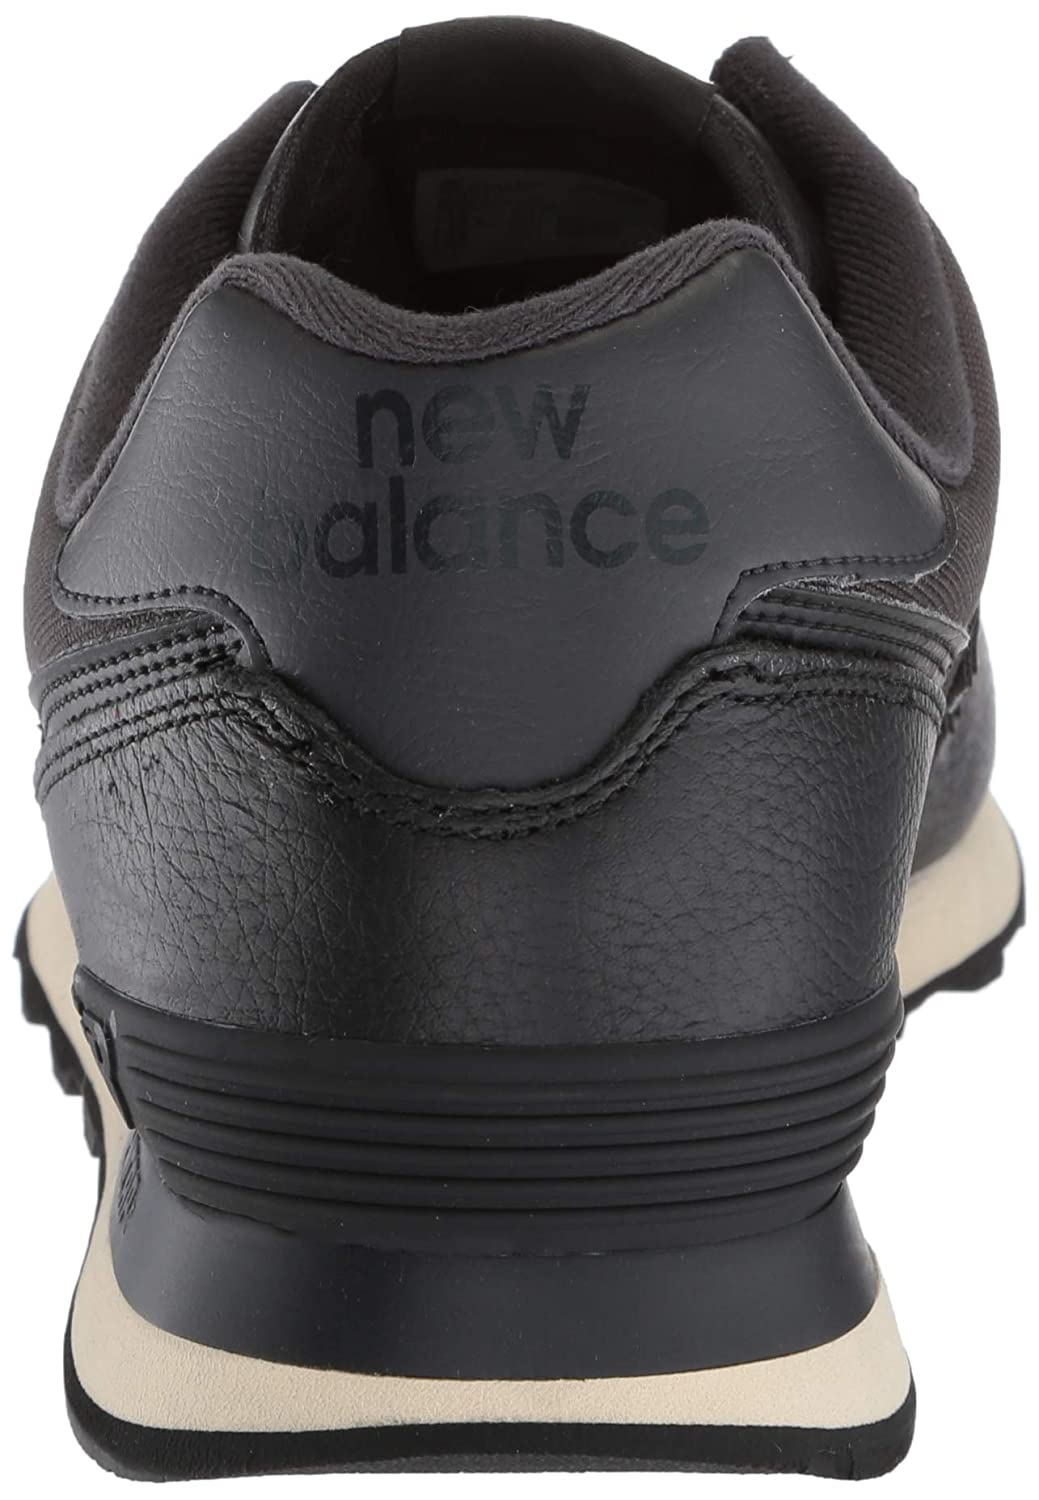 c5026e301e785 ... New Balance Men s Iconic 574 Sneaker B07979NR5R Fashion Fashion Fashion  Sneakers d2f2f9 ...